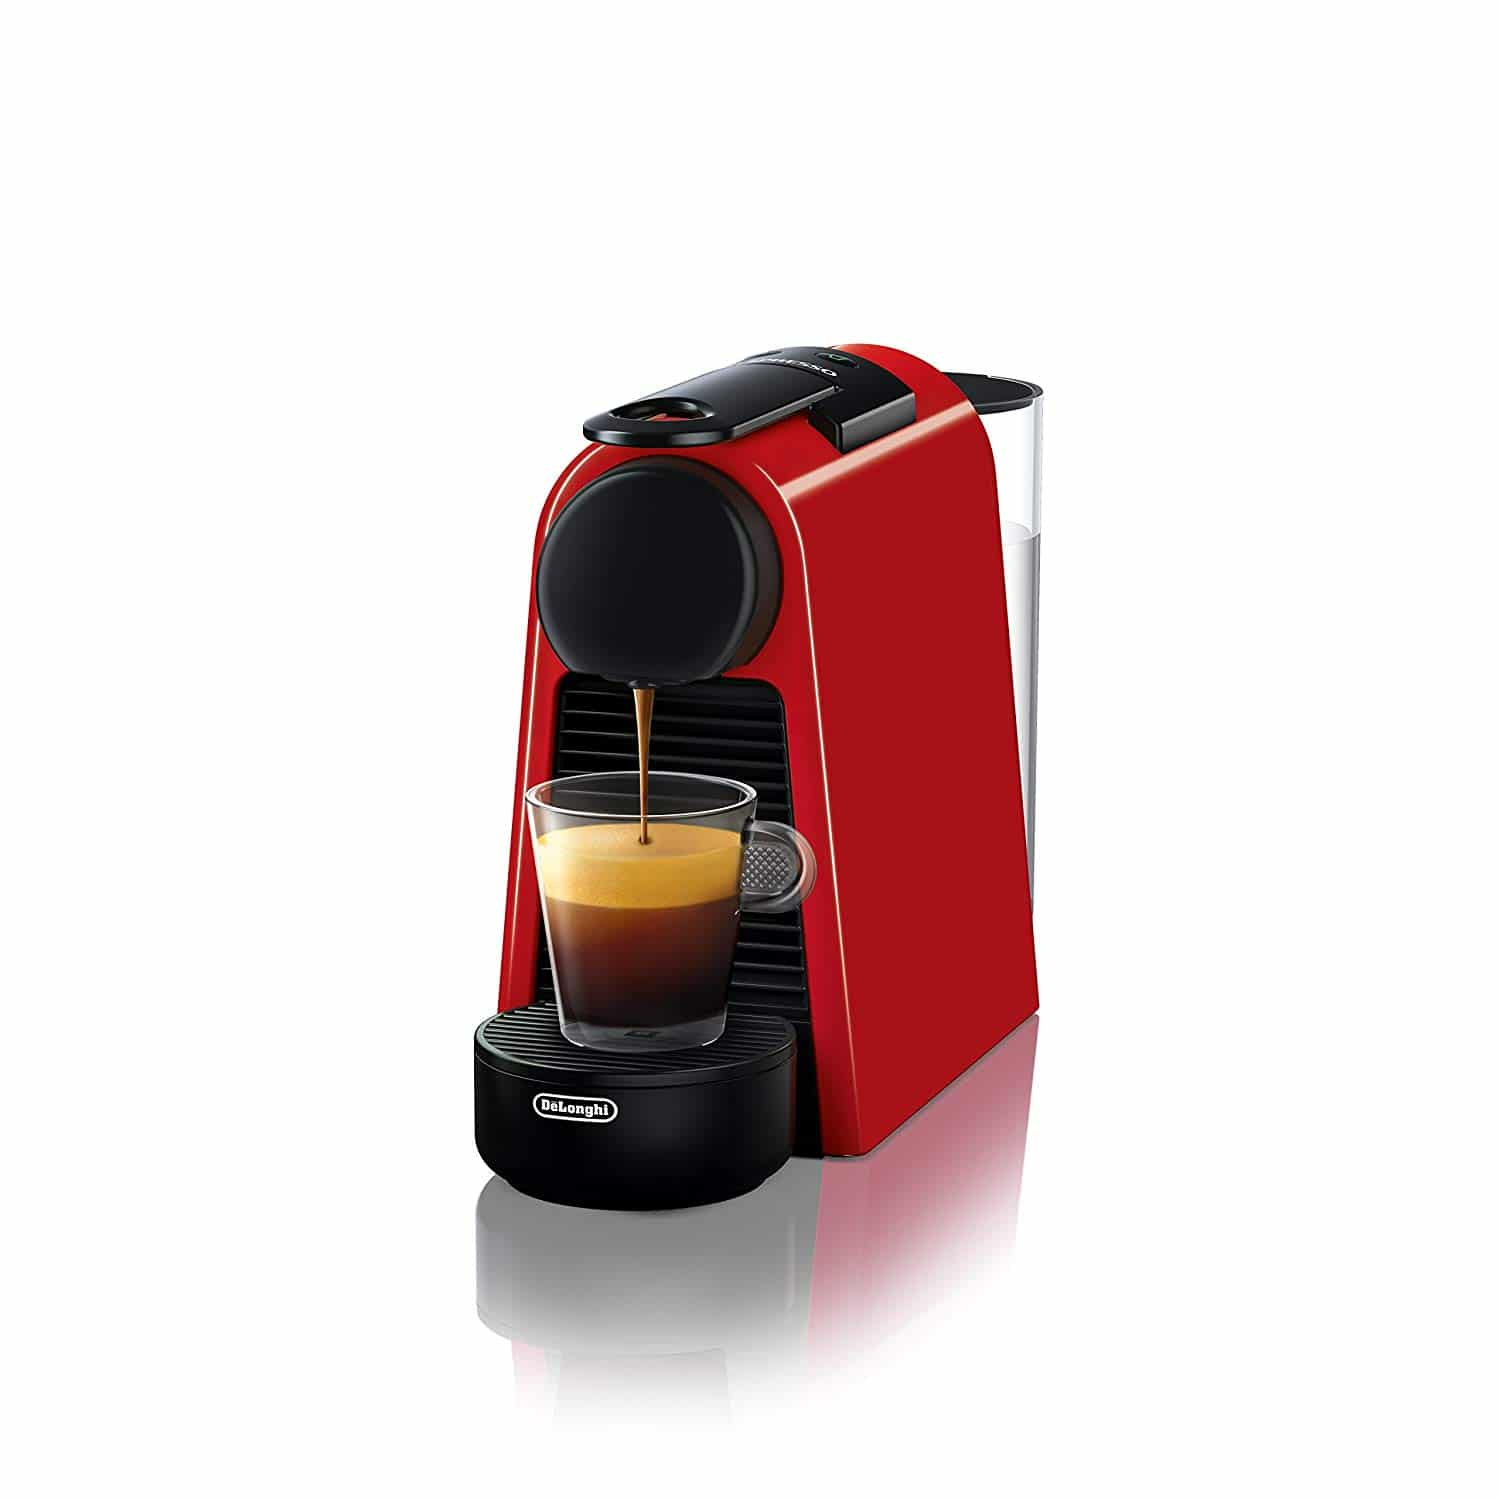 cool-gadgets-for-men-espresso